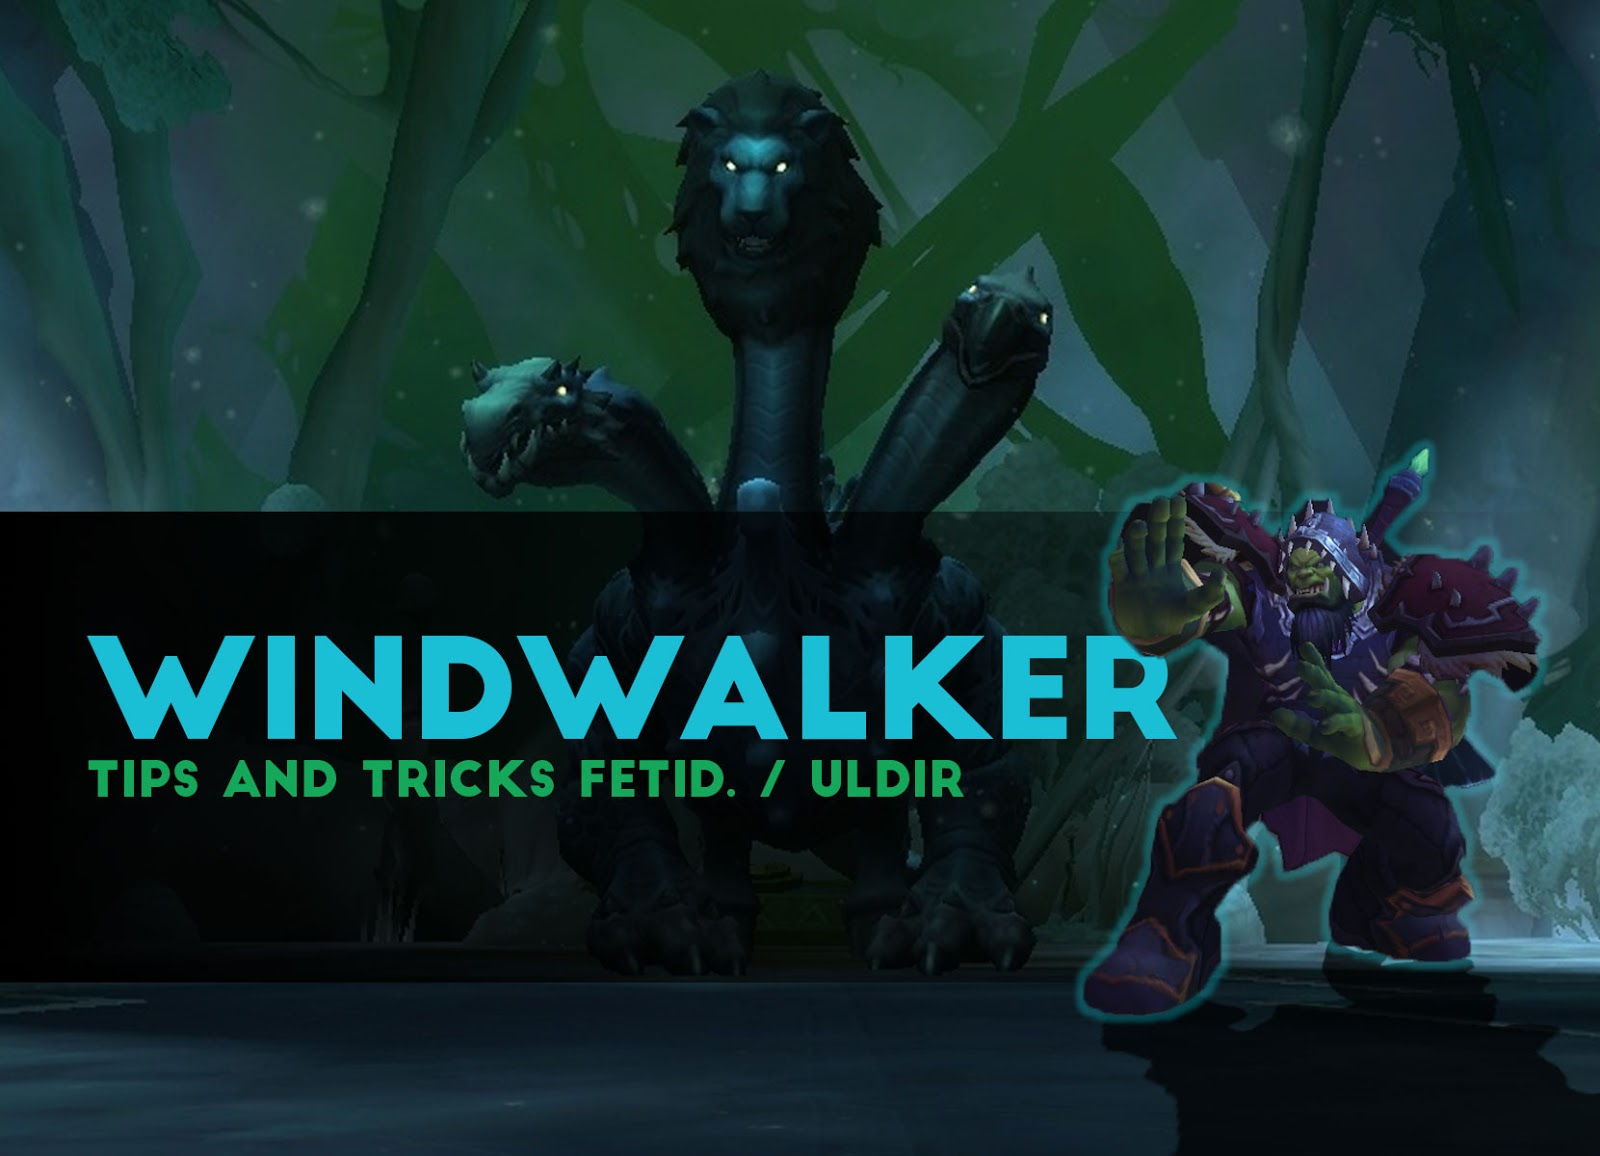 WindWalker Tips and Tricks Fetid Devourer / ULDIR - Patch 8.0